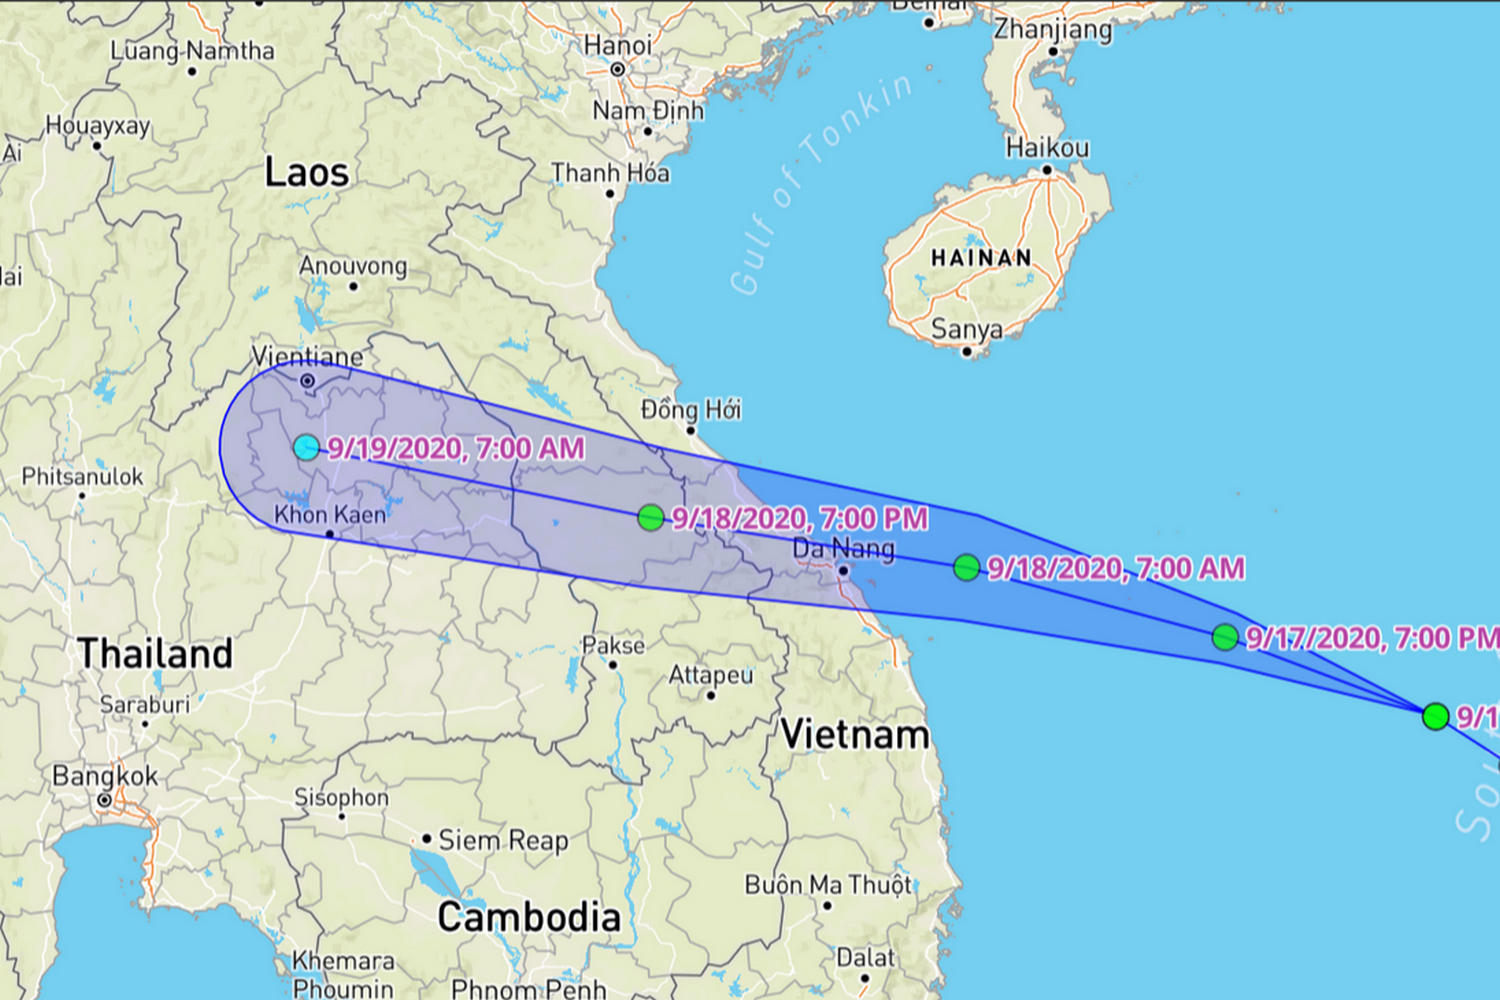 Path of Tropical Storm Noul. (Map: weatherunderground)